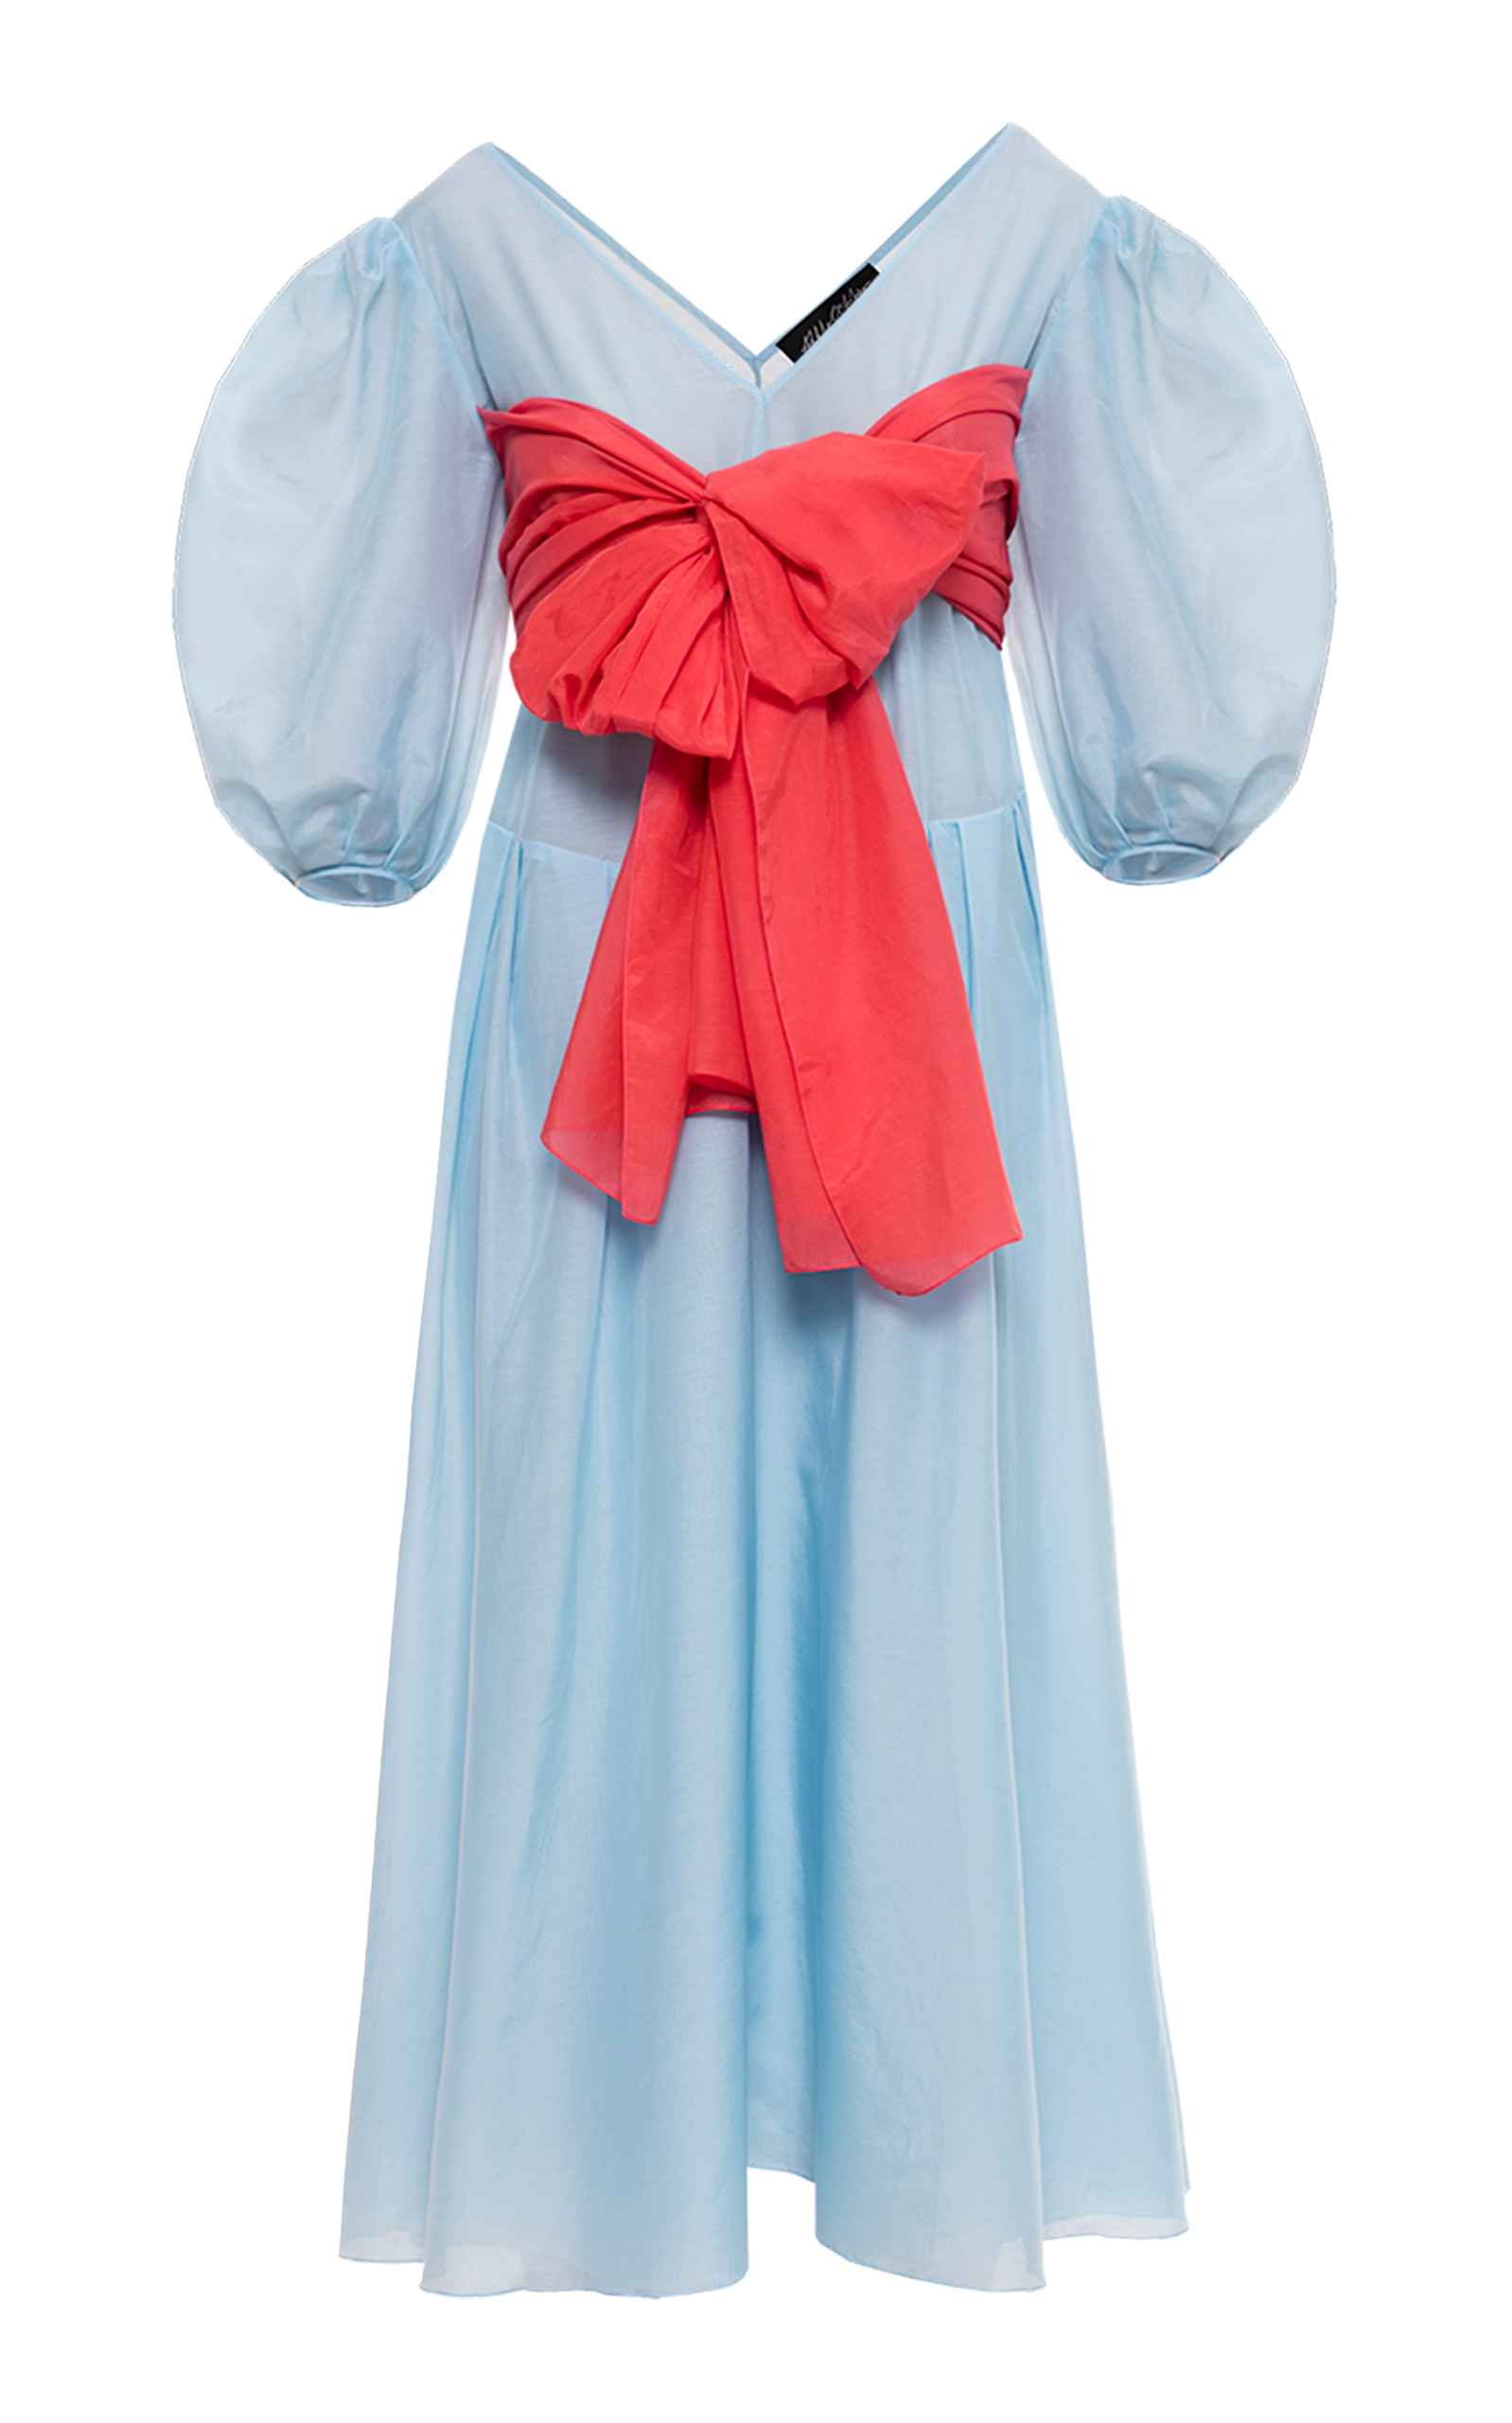 Alisa bow-embellished dress - Blue ANNA OCTOBER Buy Cheap Best Sale Outlet Shop For Cheap 100% Guaranteed Discount Visit T3sgA0